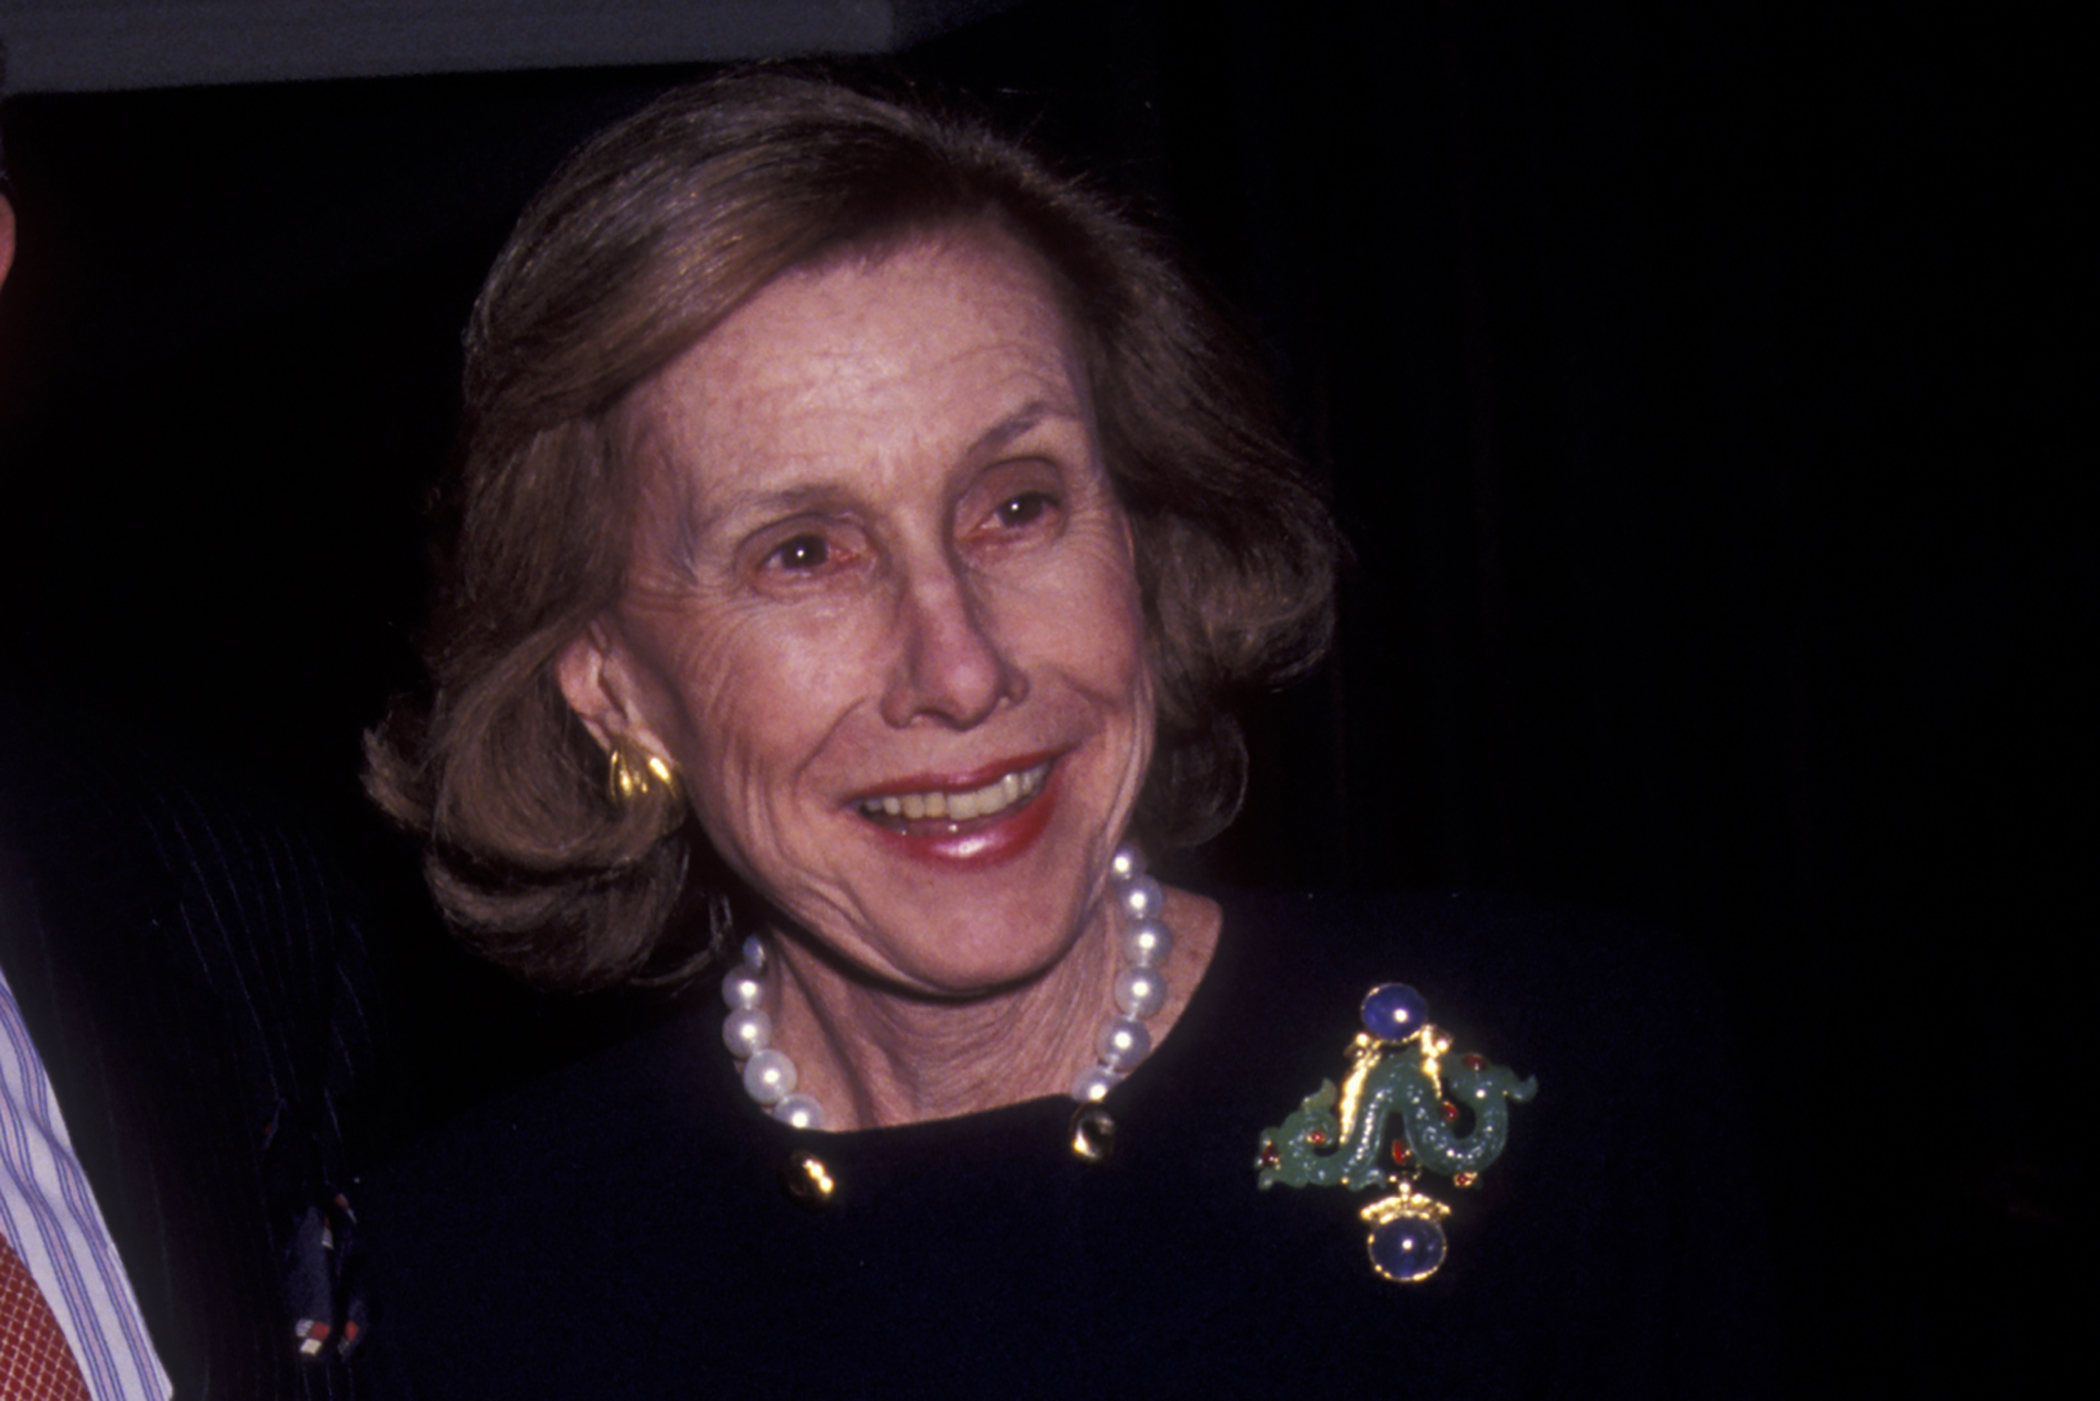 Anne Cox Chambers attends 38th Annual Winter Antiques Show on January 17, 1992 at Seventh Regiment Armory in New York City.